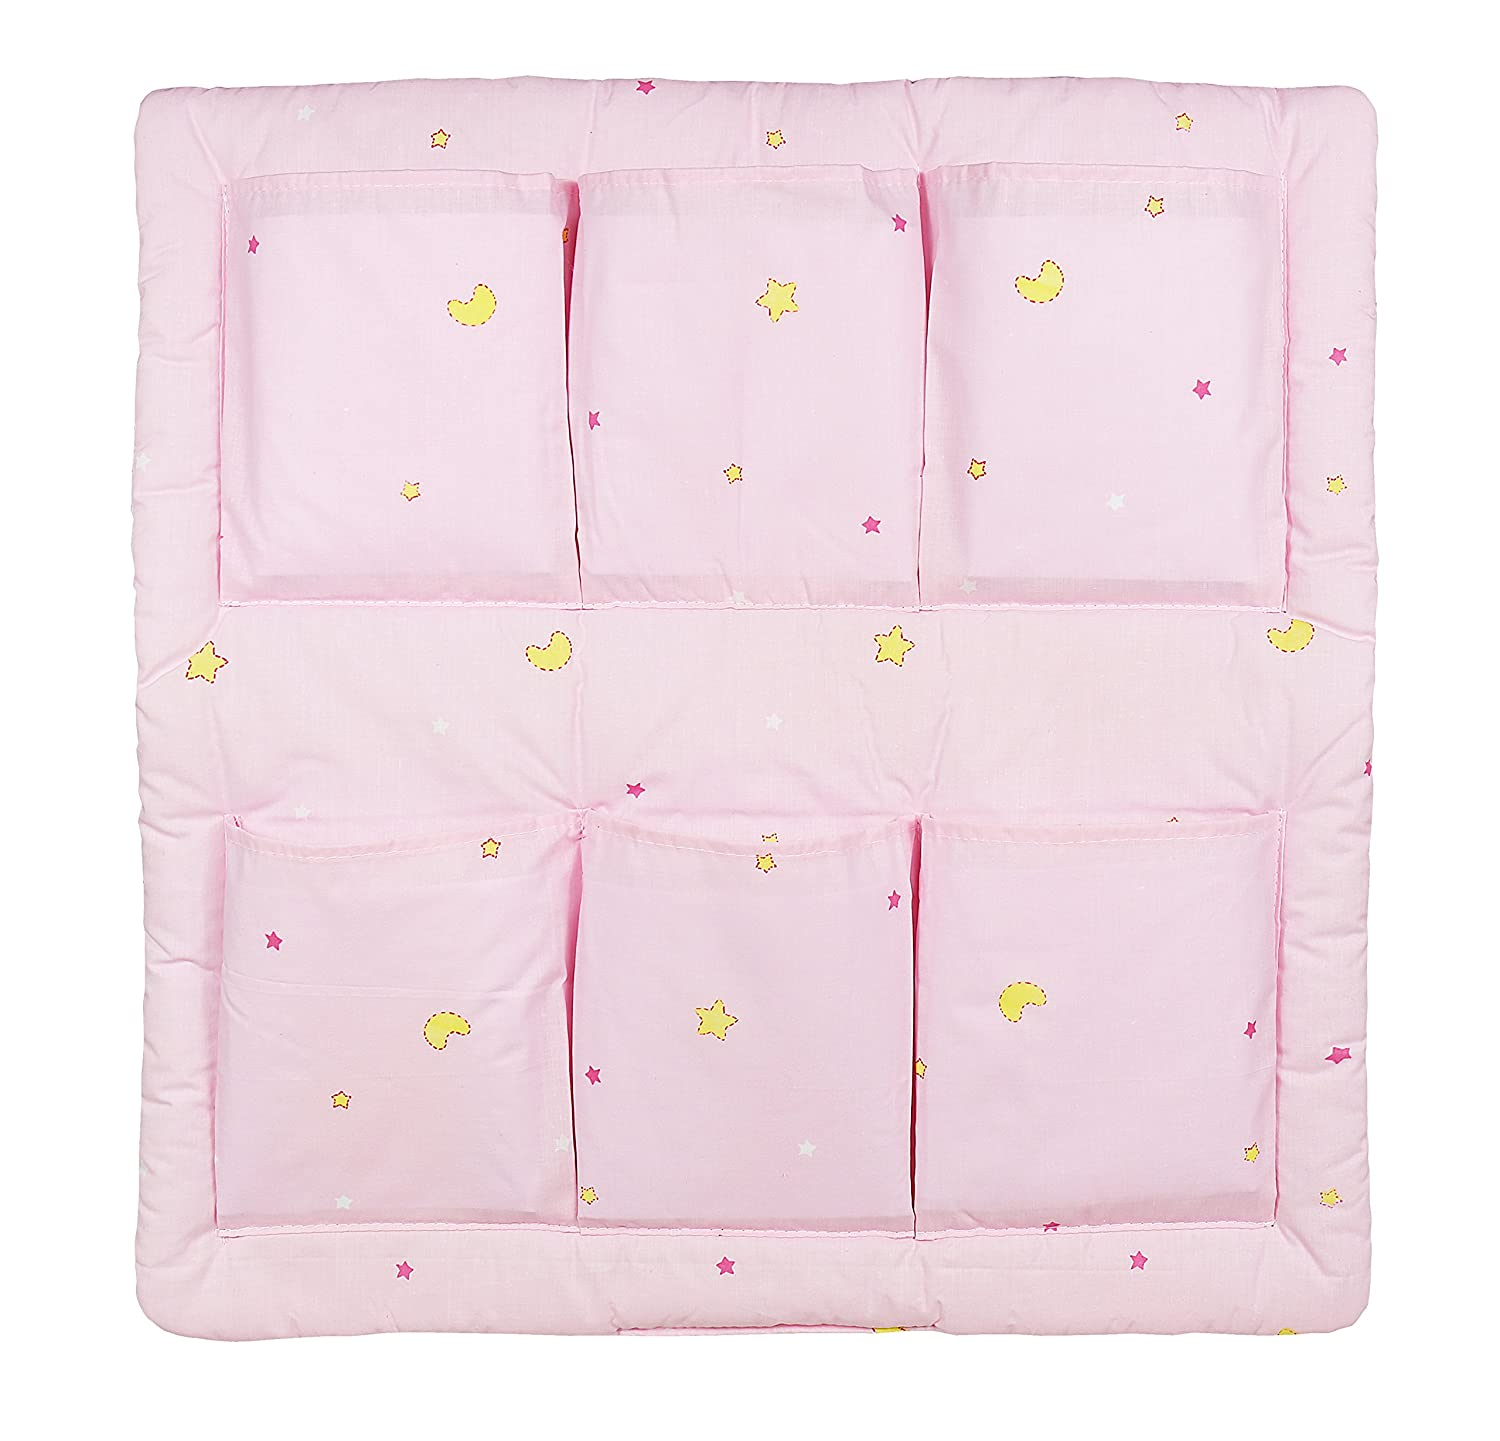 COT TIDY ORGANISER FOR COT /& COT BED MANY DESIGNS 6 POCKETS